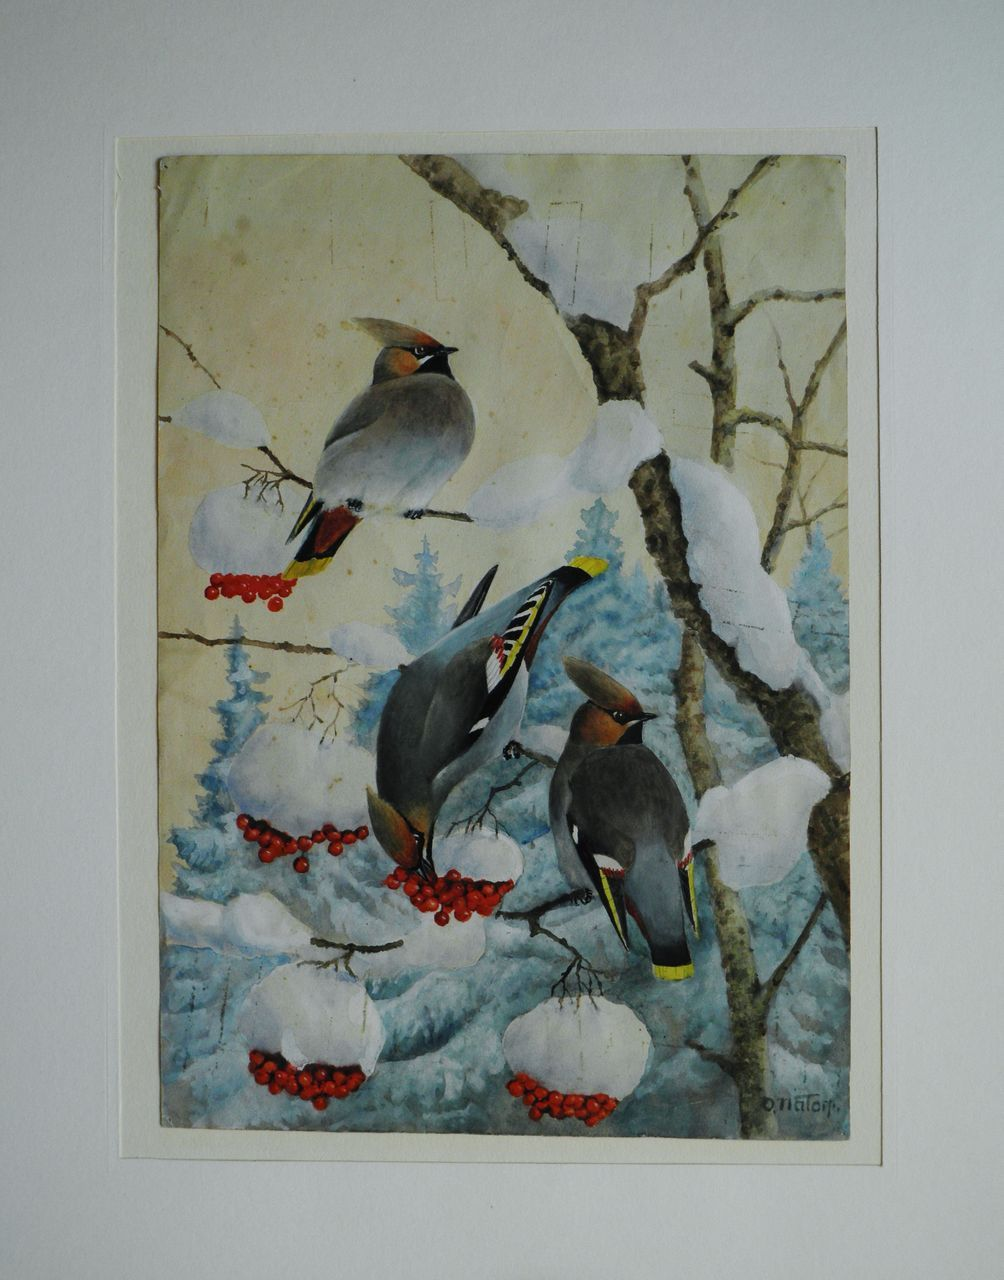 Watercolour with Cardinal Birds in Winter